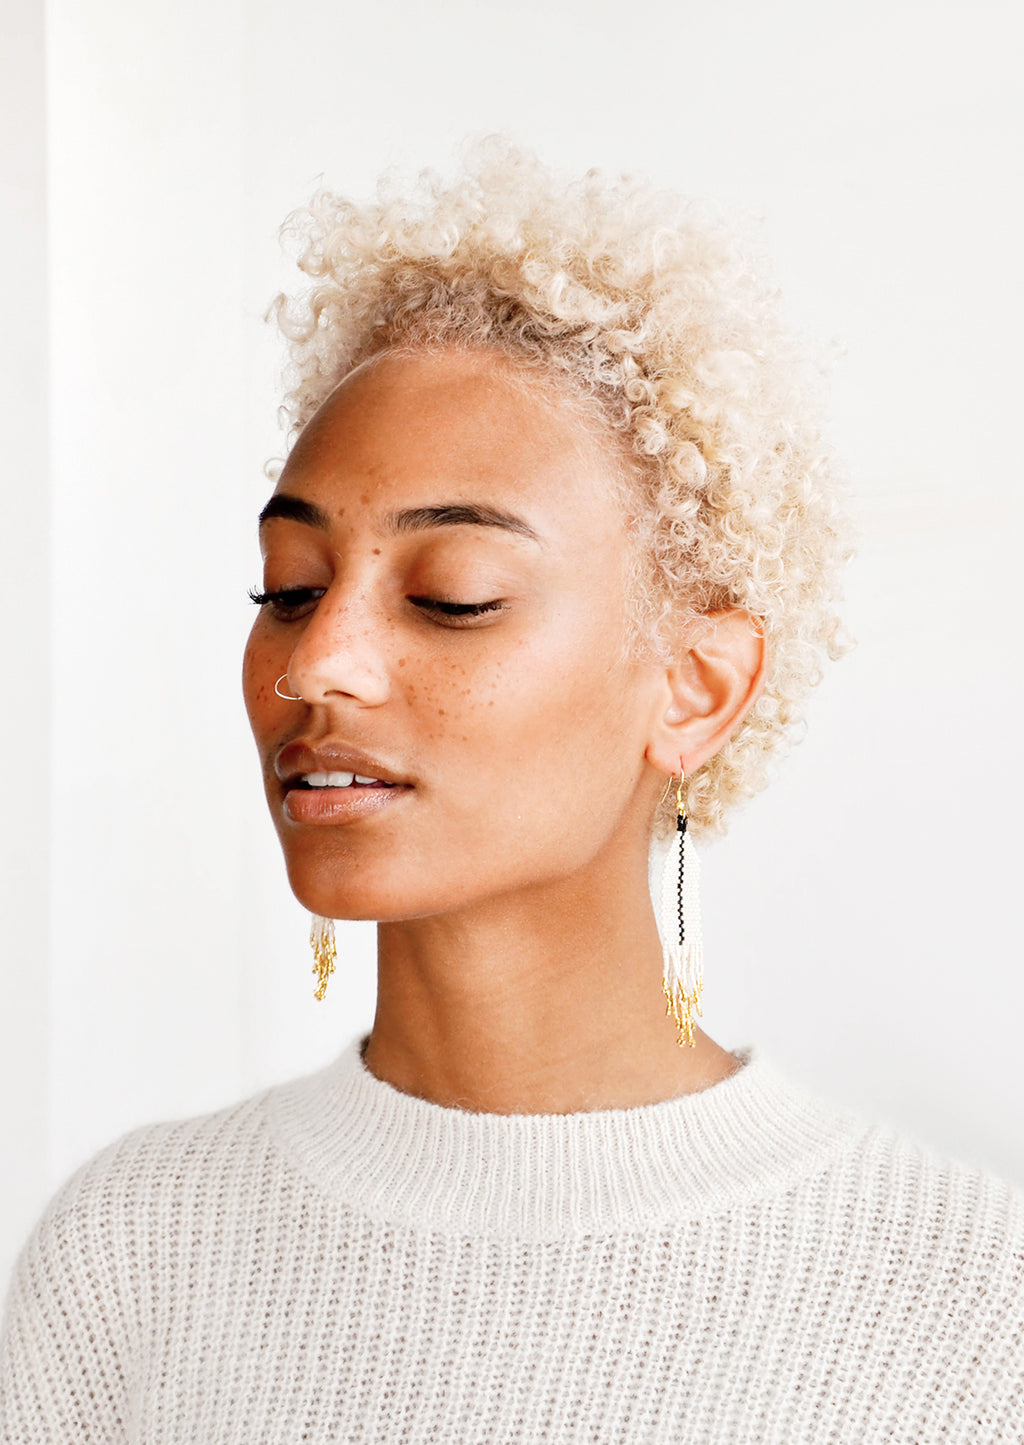 3: Model shot featuring woman wearing earrings and white top.